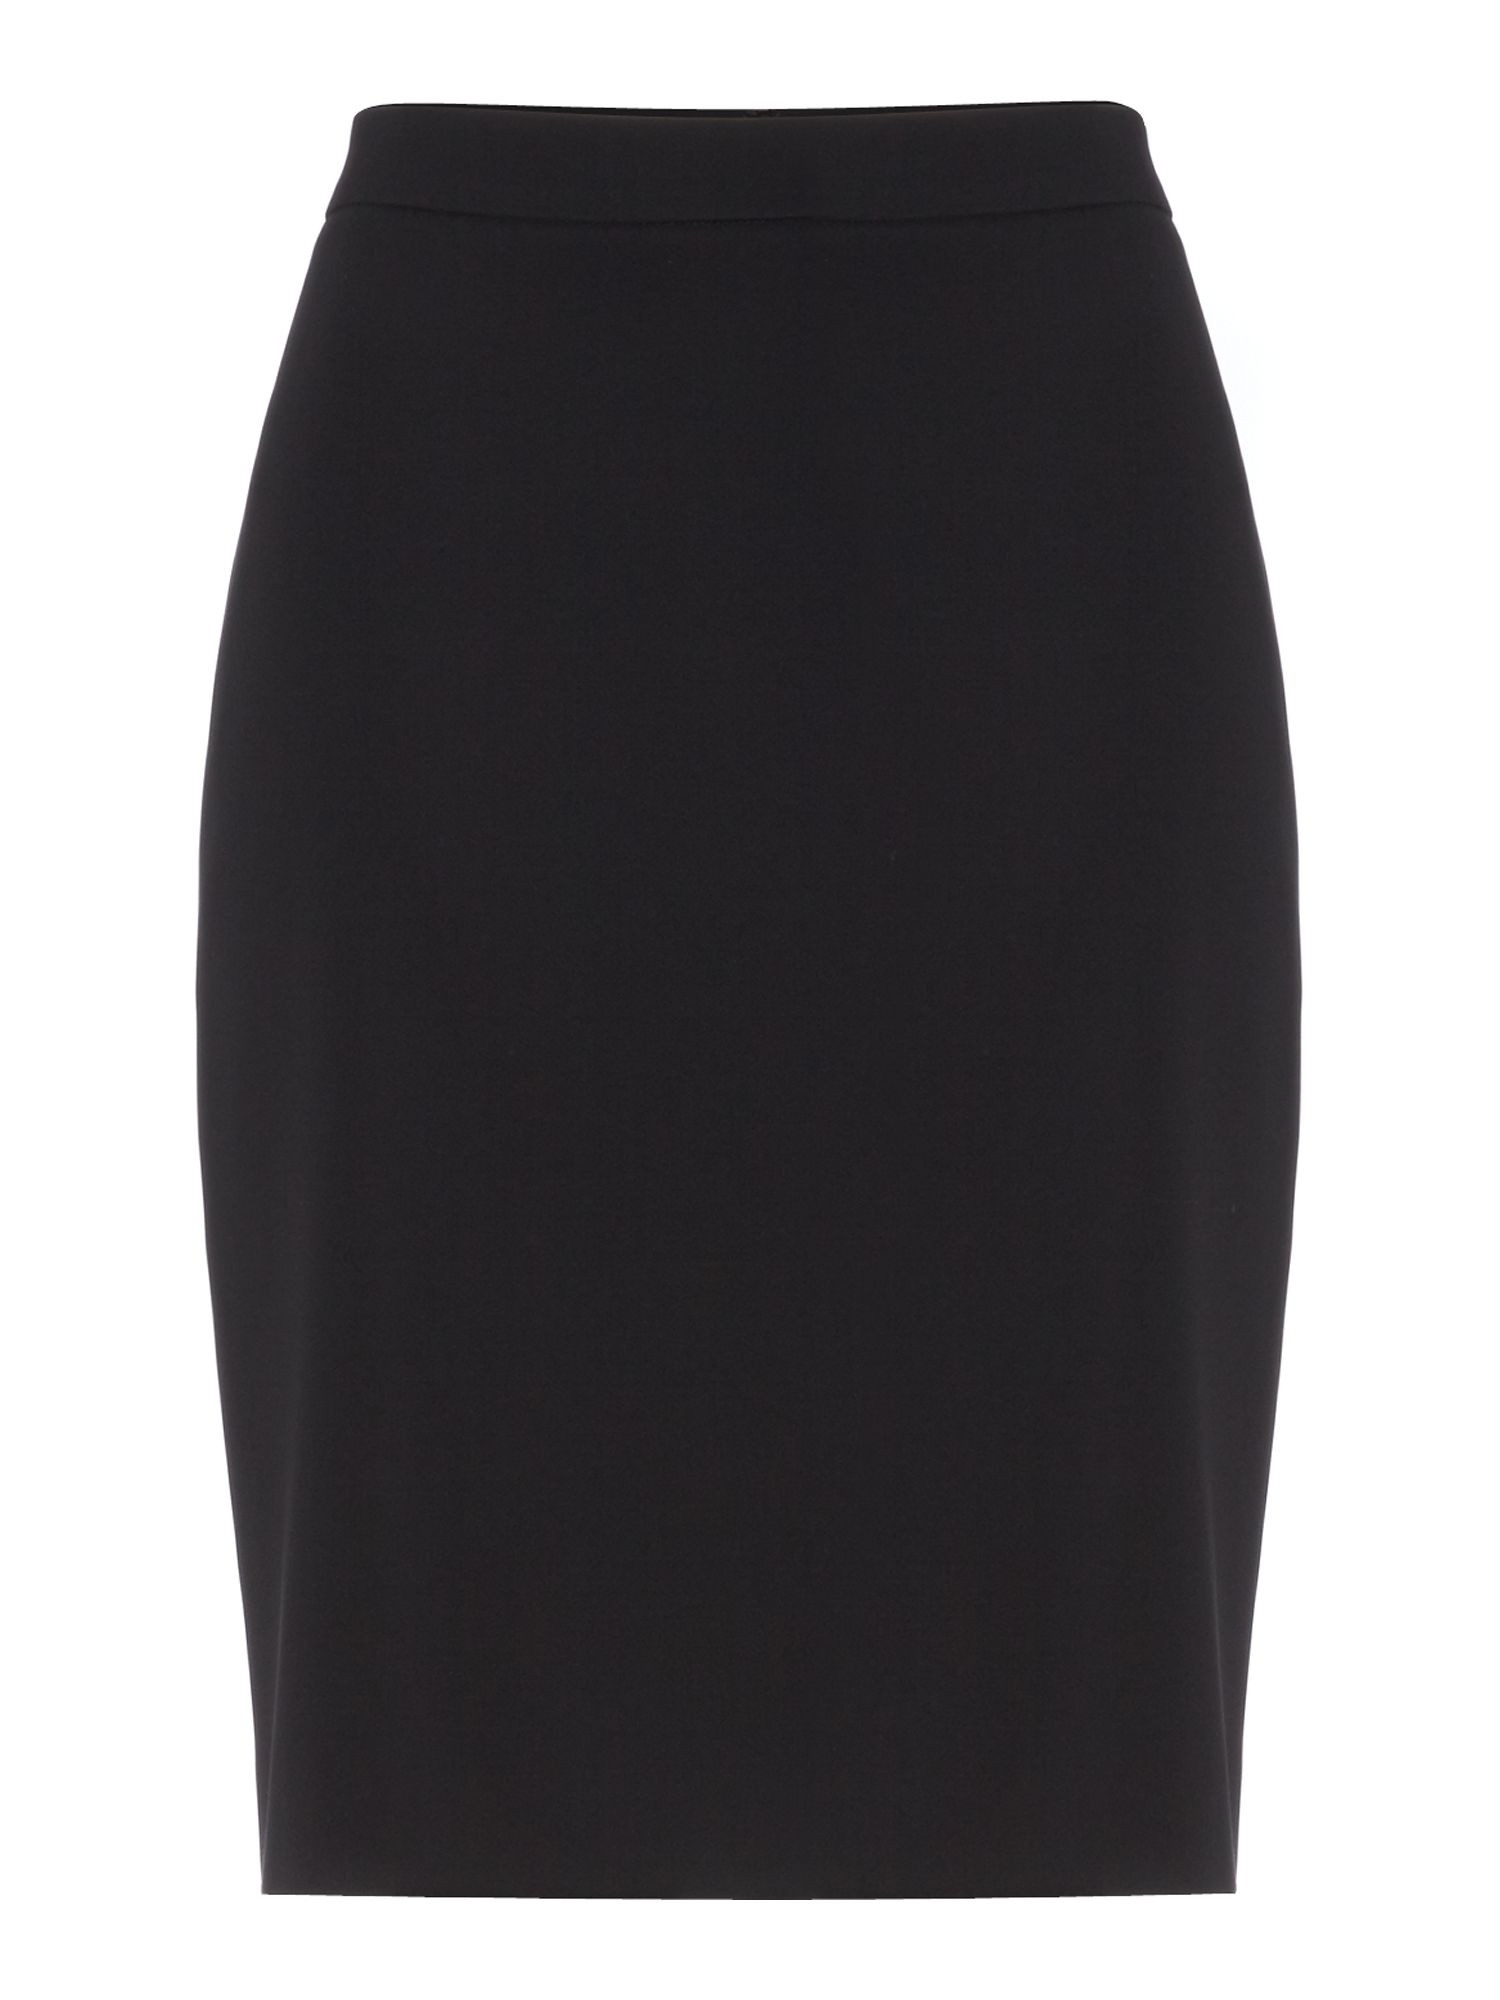 Double zip pencil skirt